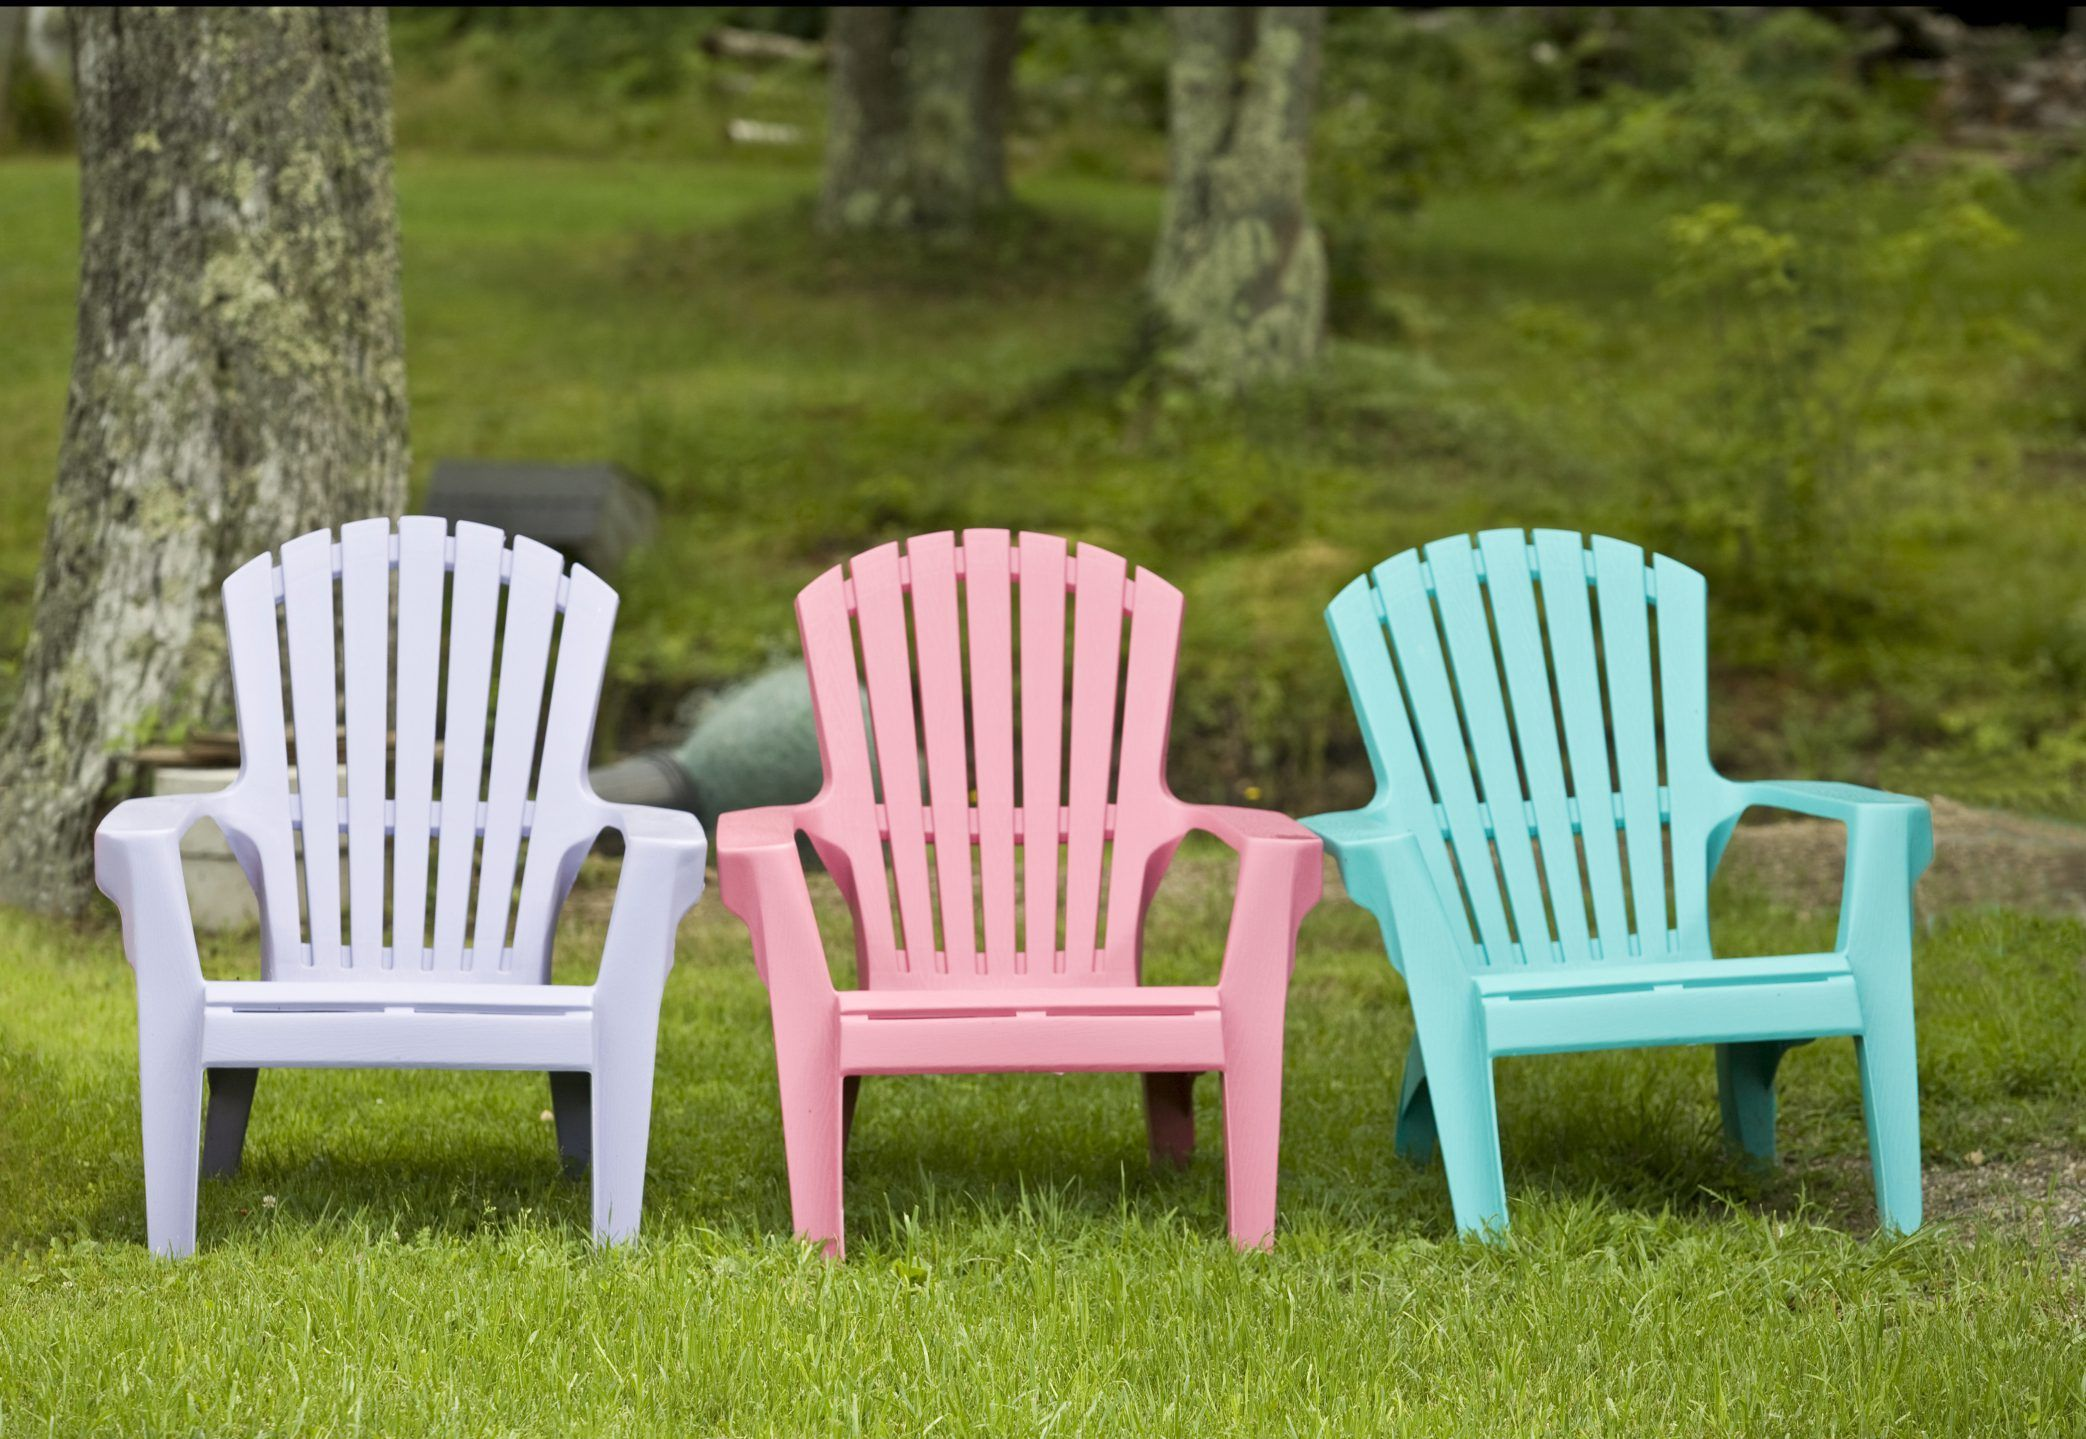 How To Paint Plastic Lawn Chairs Ehow Com Plastic Patio